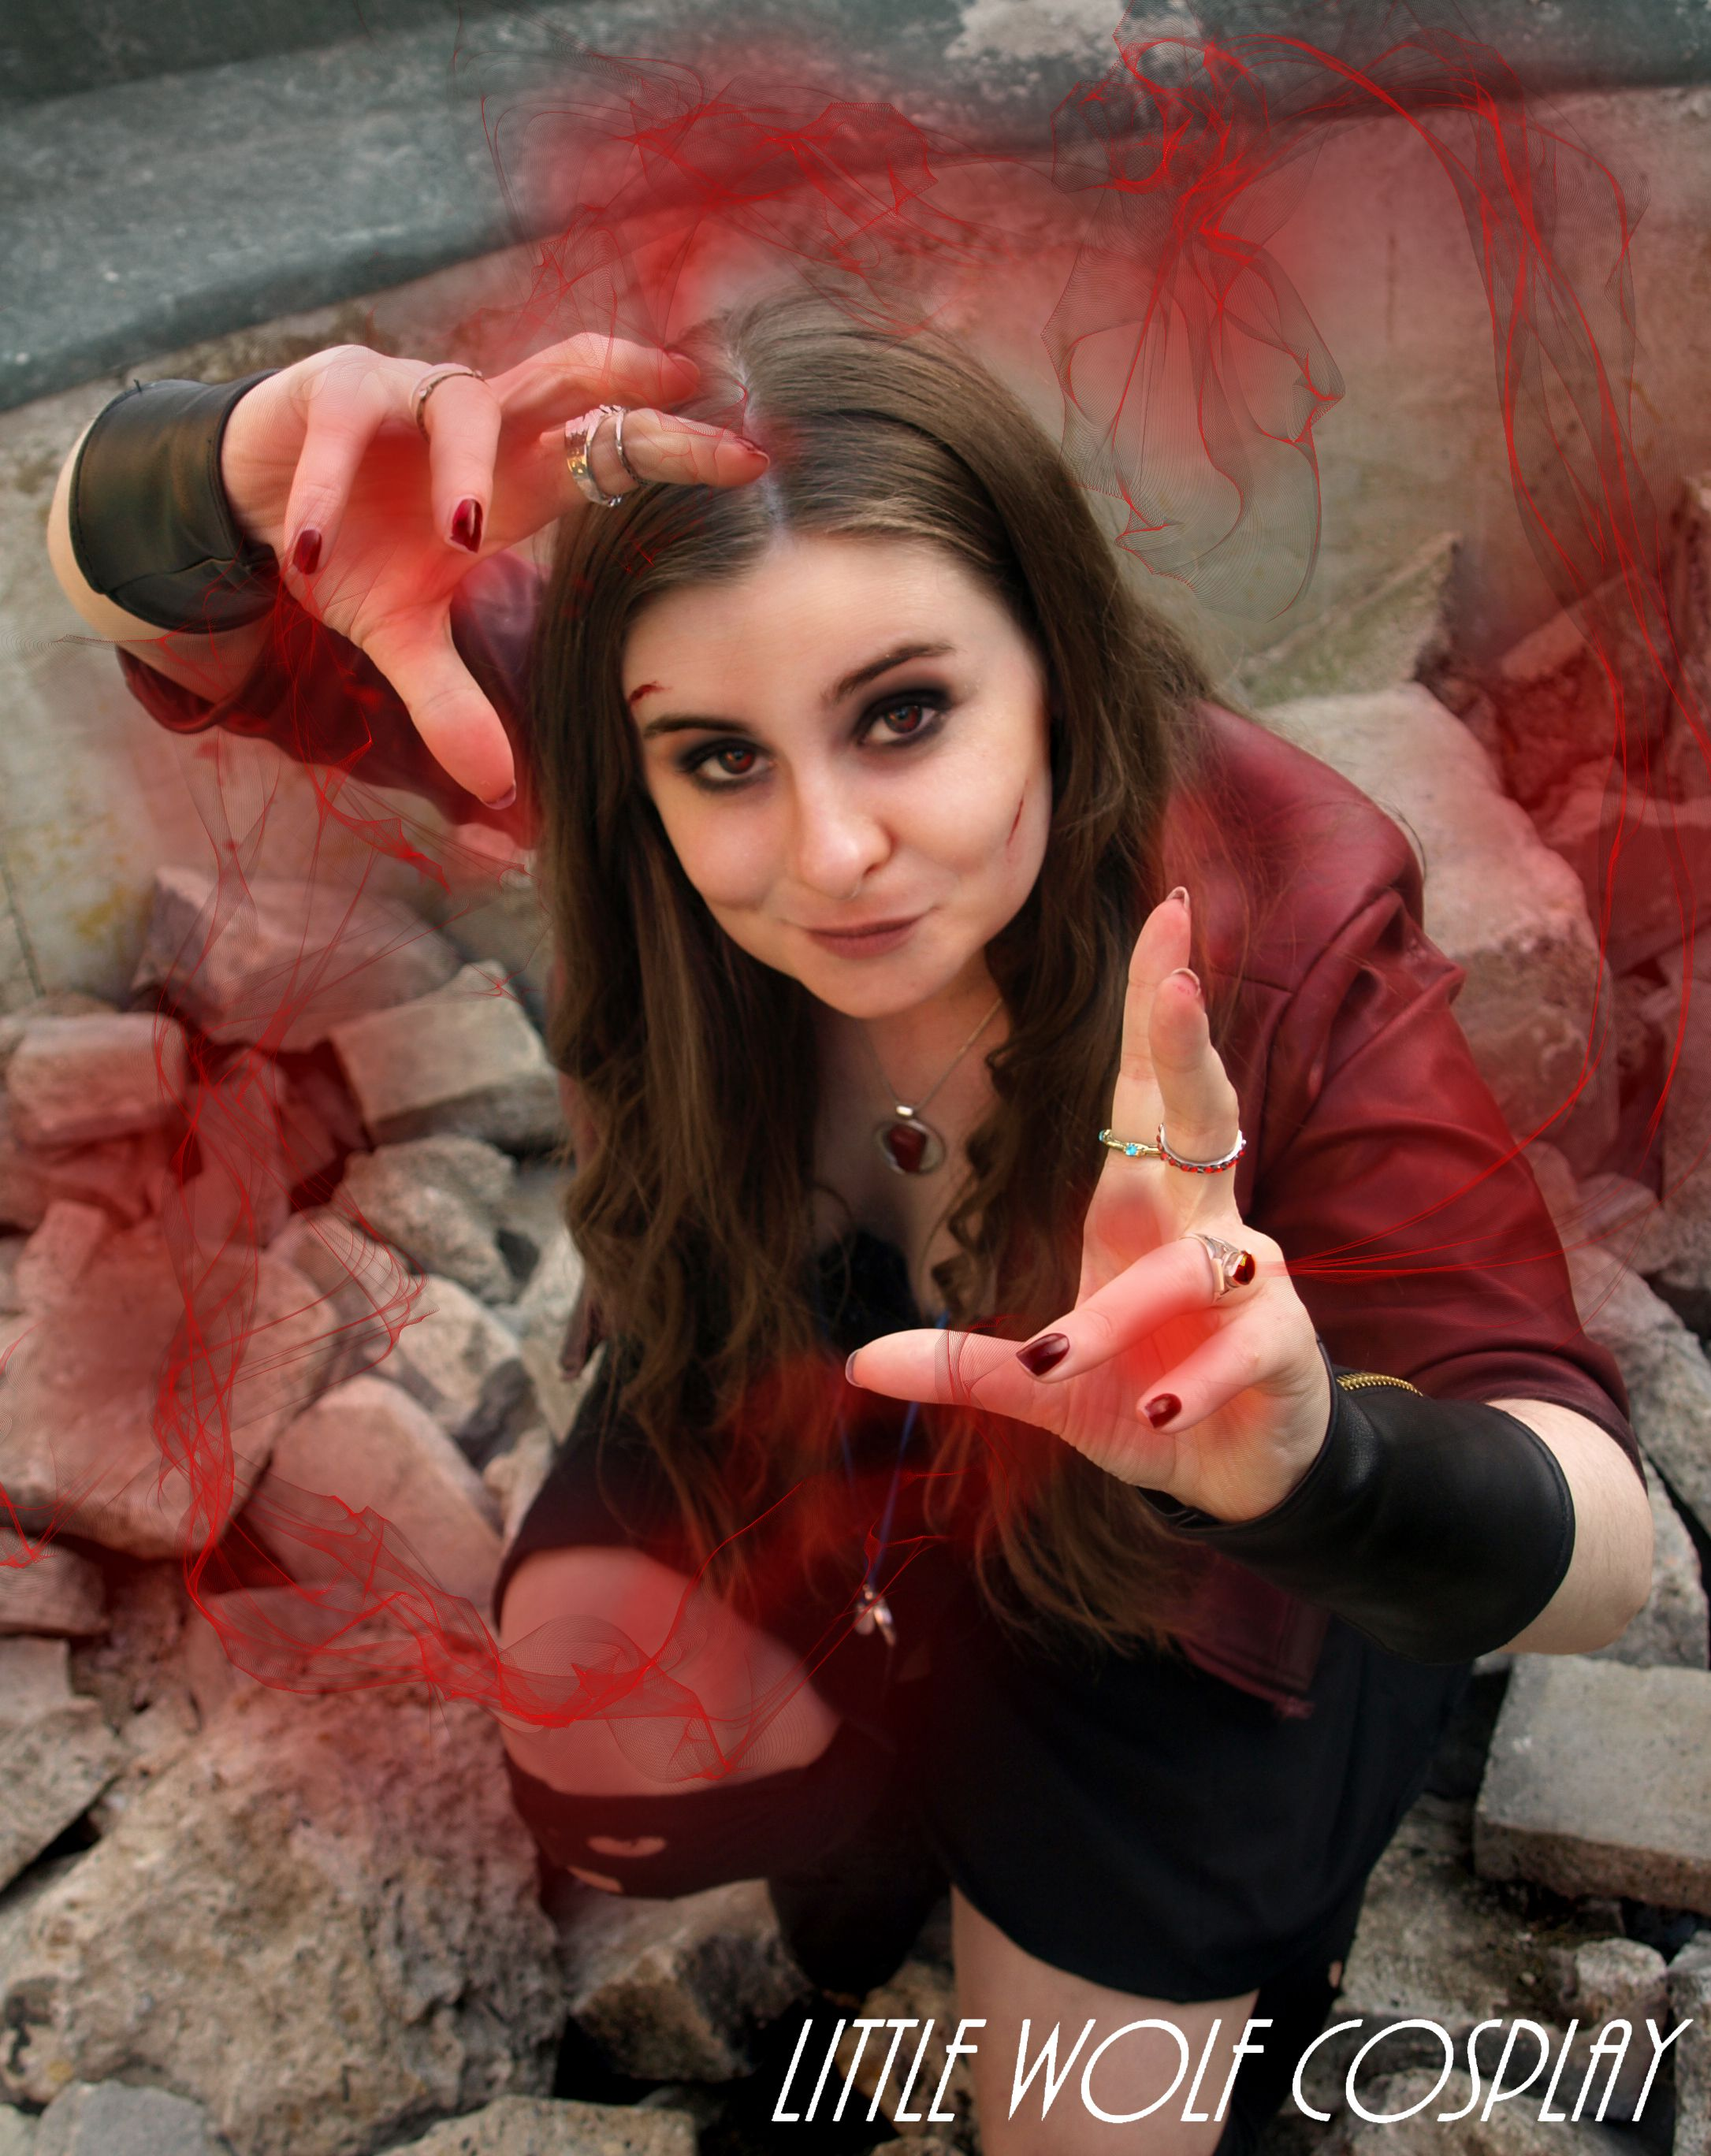 Wanda Maximoff/Scarlet Witch Cosplay from Avengers: Age of Ultron ...